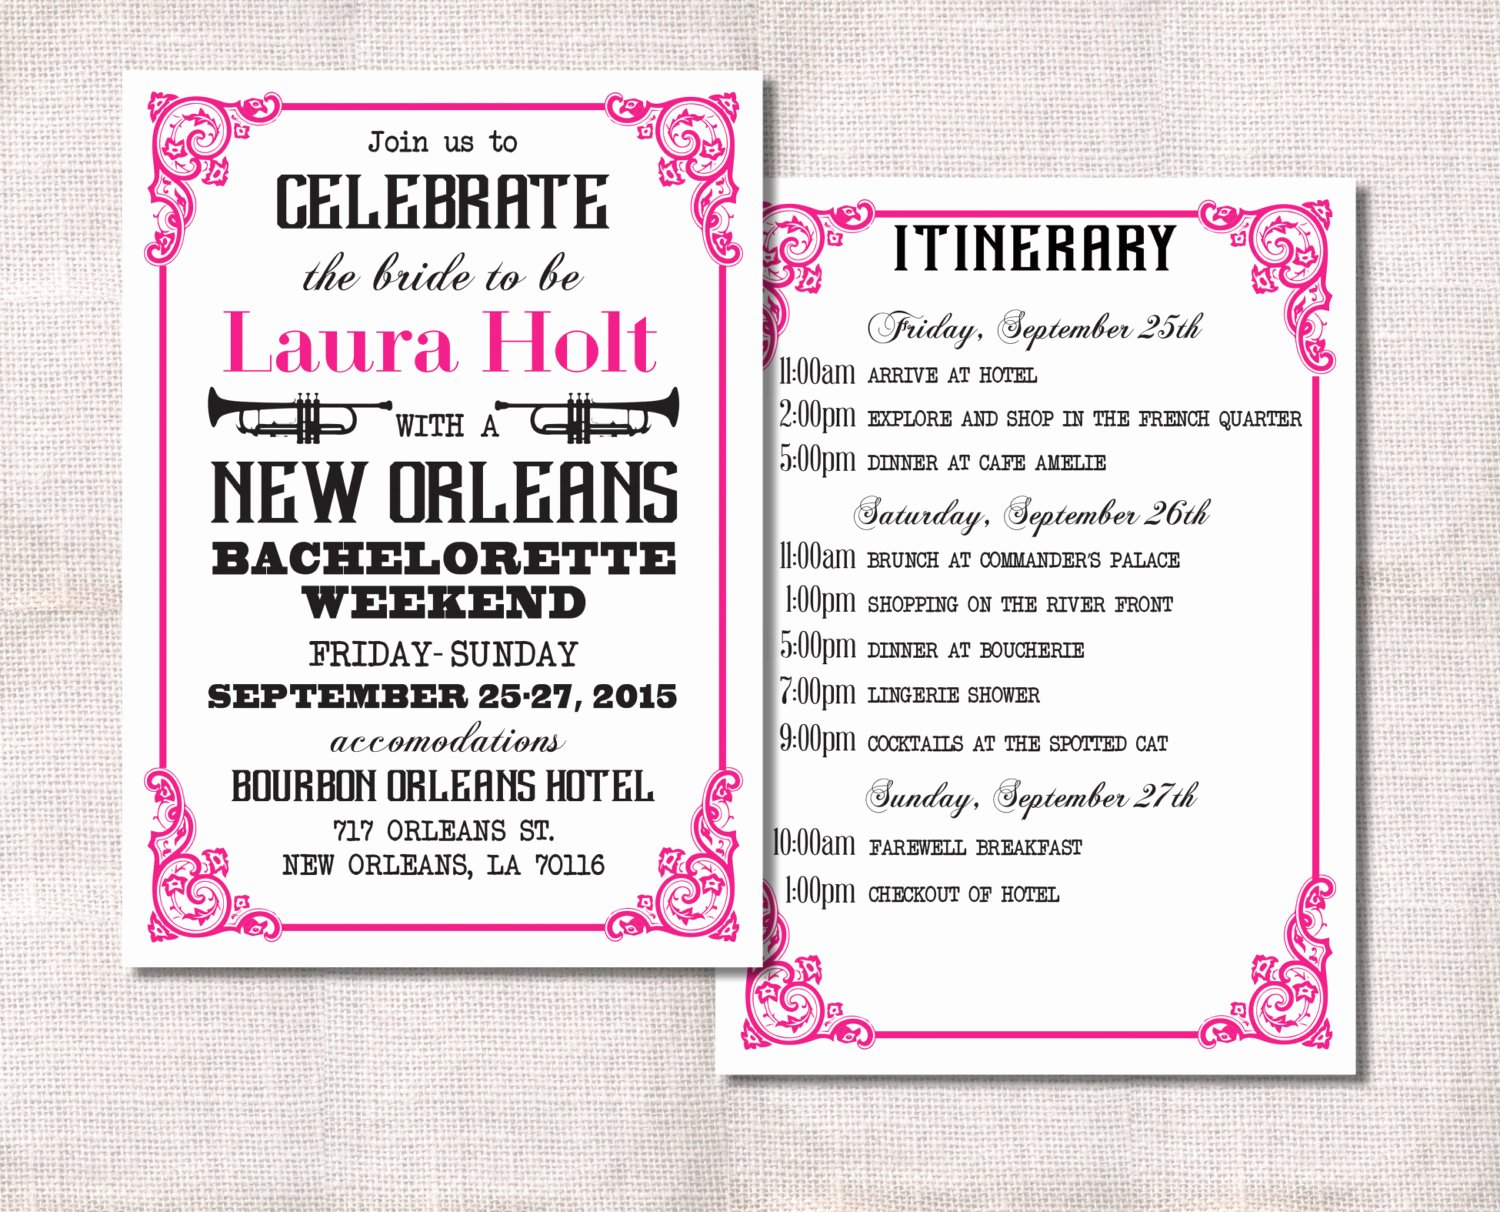 Bachelorette Party Itinerary Template Awesome Bachelorette Party Weekend Invitation and Itinerary Custom